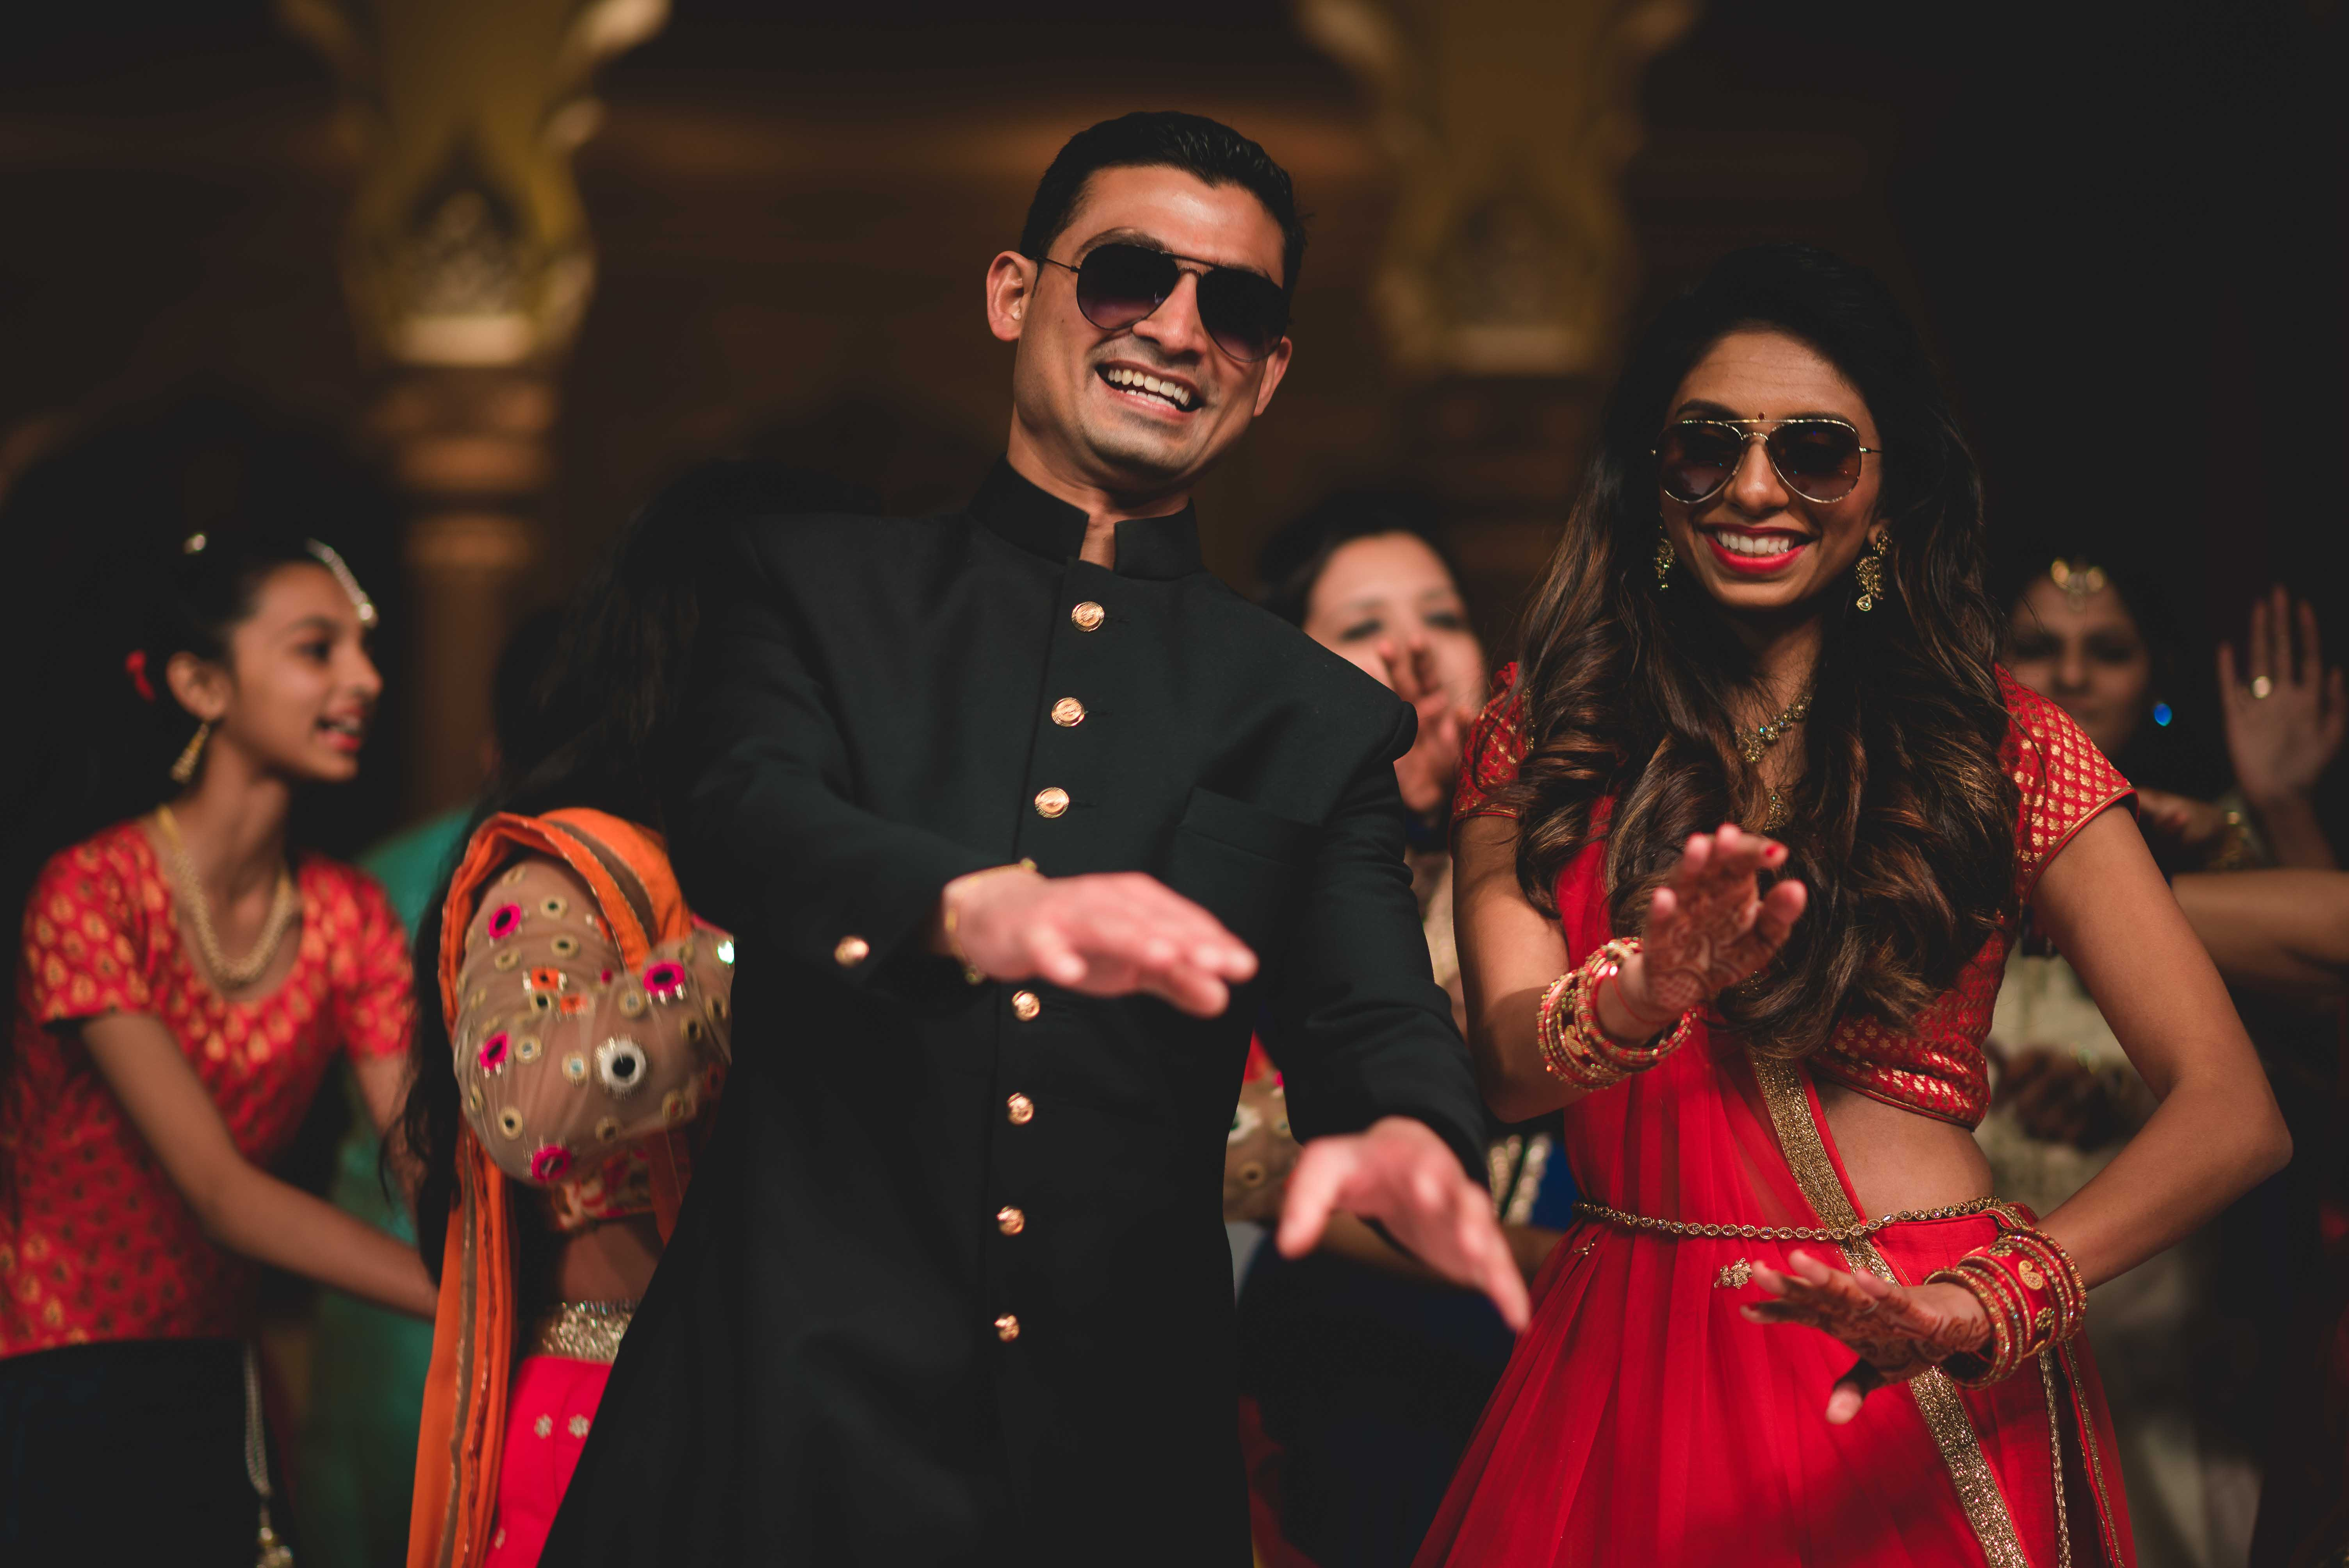 Nidhi + Arpan's Exotic Indian Destination Wedding